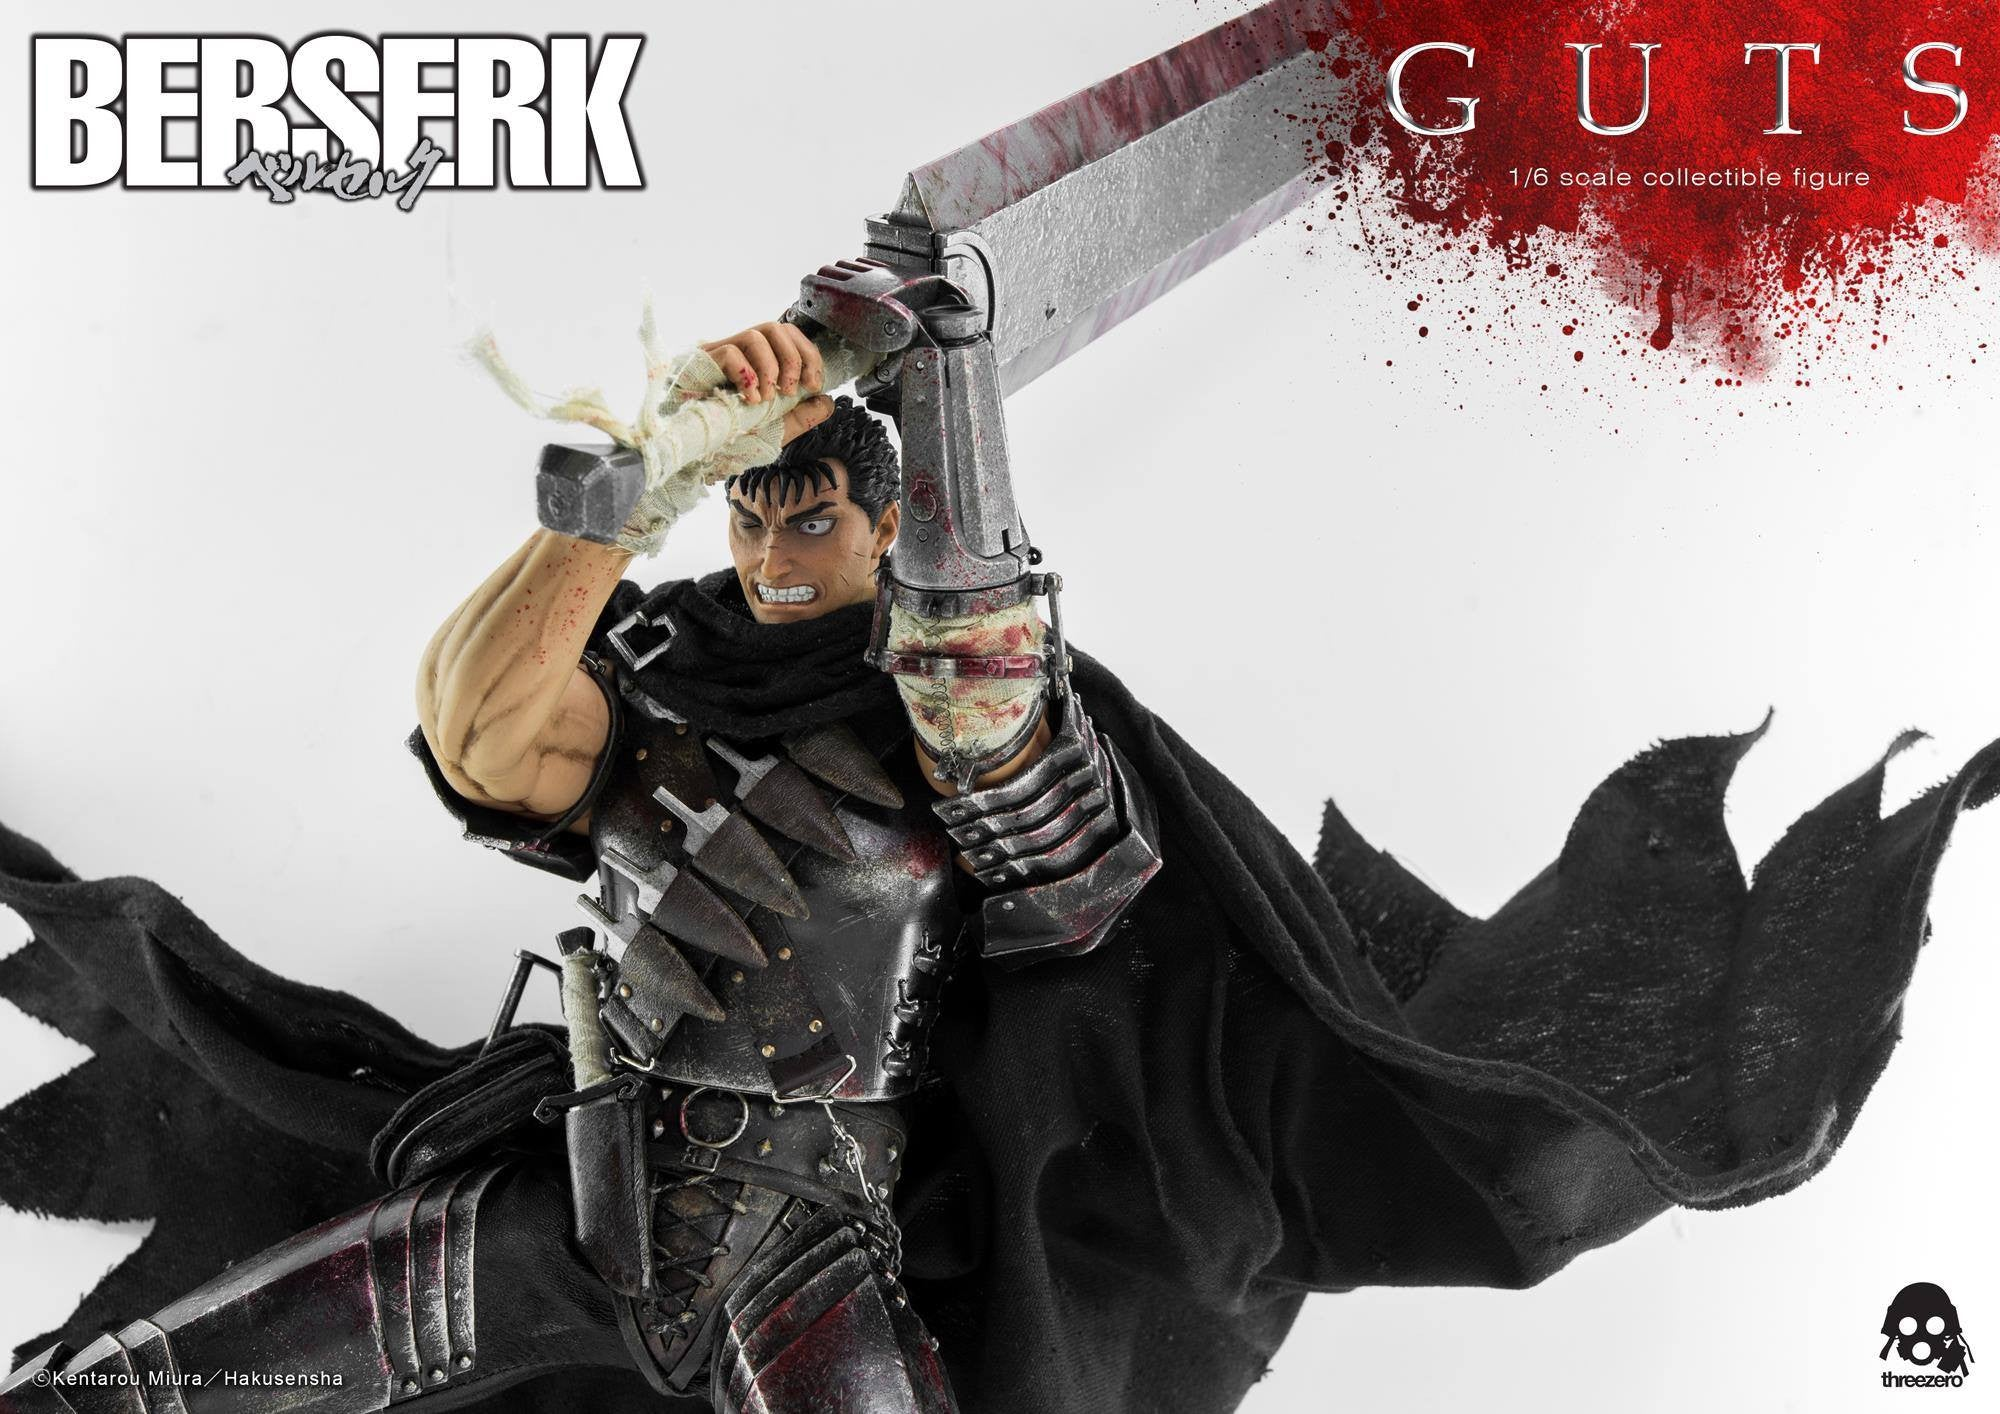 Threezero - Berserk - Guts (Reissue) - Marvelous Toys - 15